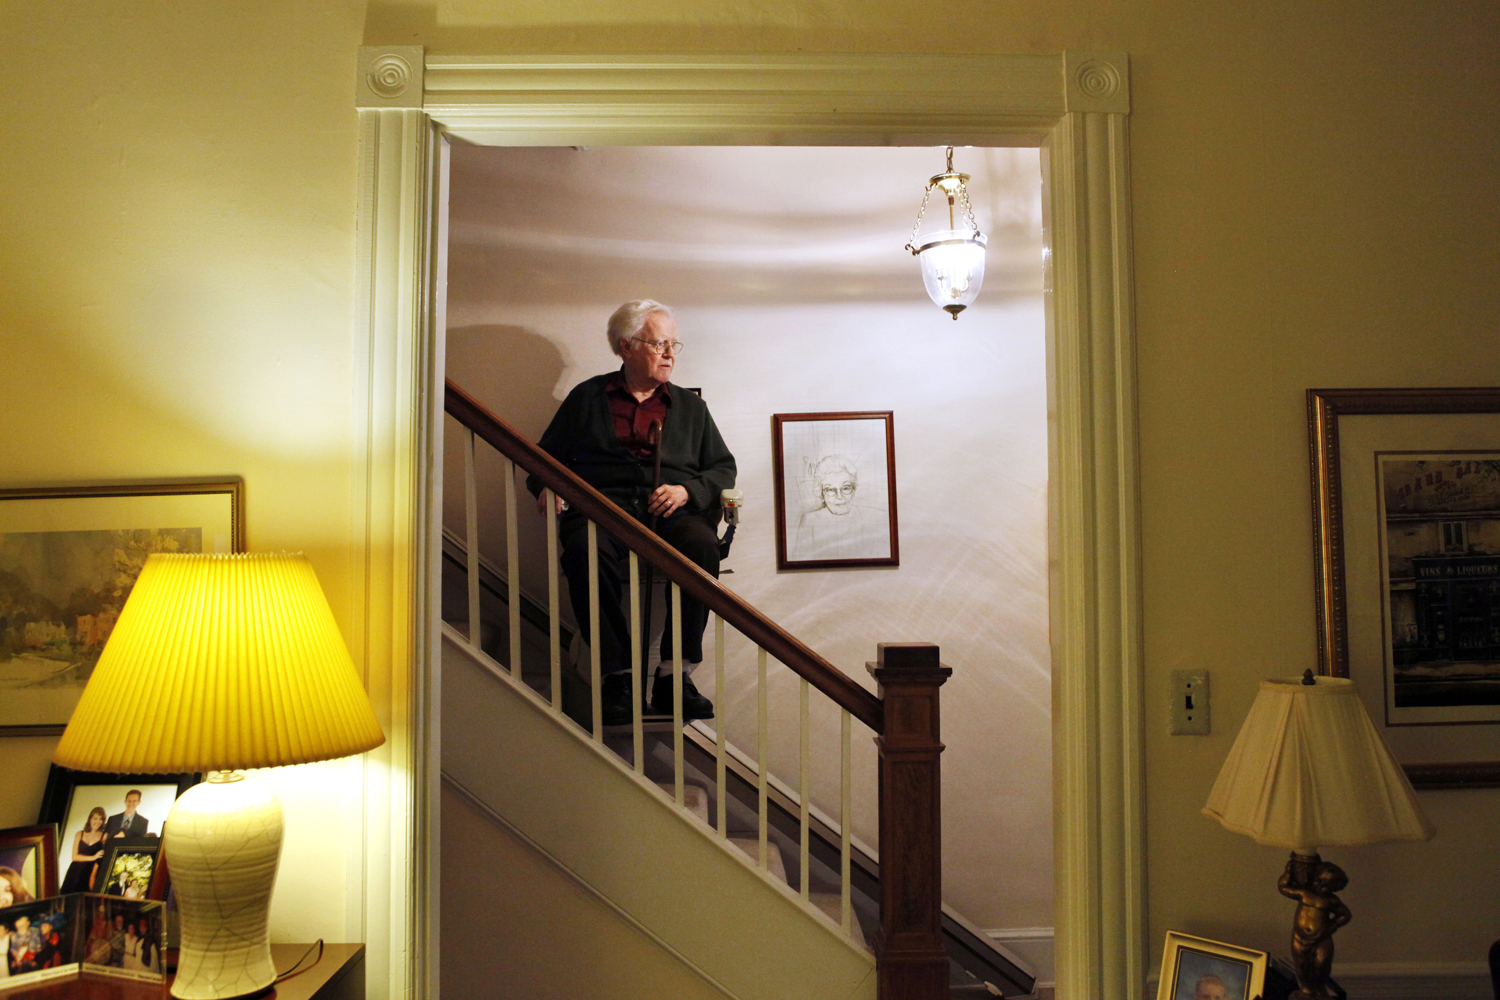 In this photo taken Oct. 12, 2011, Irving Lindenblad, 82, rides down the stairs assisted by a stair lift, at his home in Washington. (Jacquelyn Martin/AP)